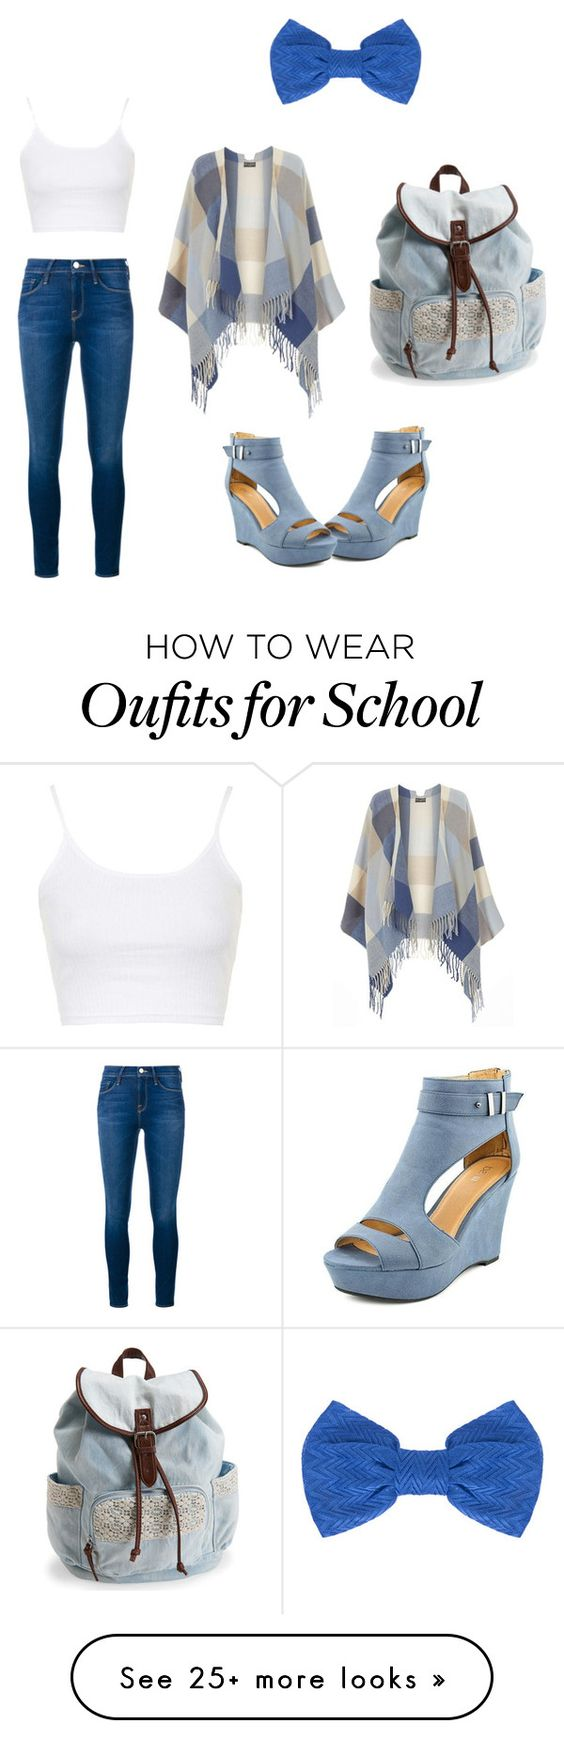 """School Blues"" by jennakiwi on Polyvore featuring Dorothy Perkins, Topshop, Frame Denim, Aéropostale, Missoni, women's clothing, women, female, woman and misses"